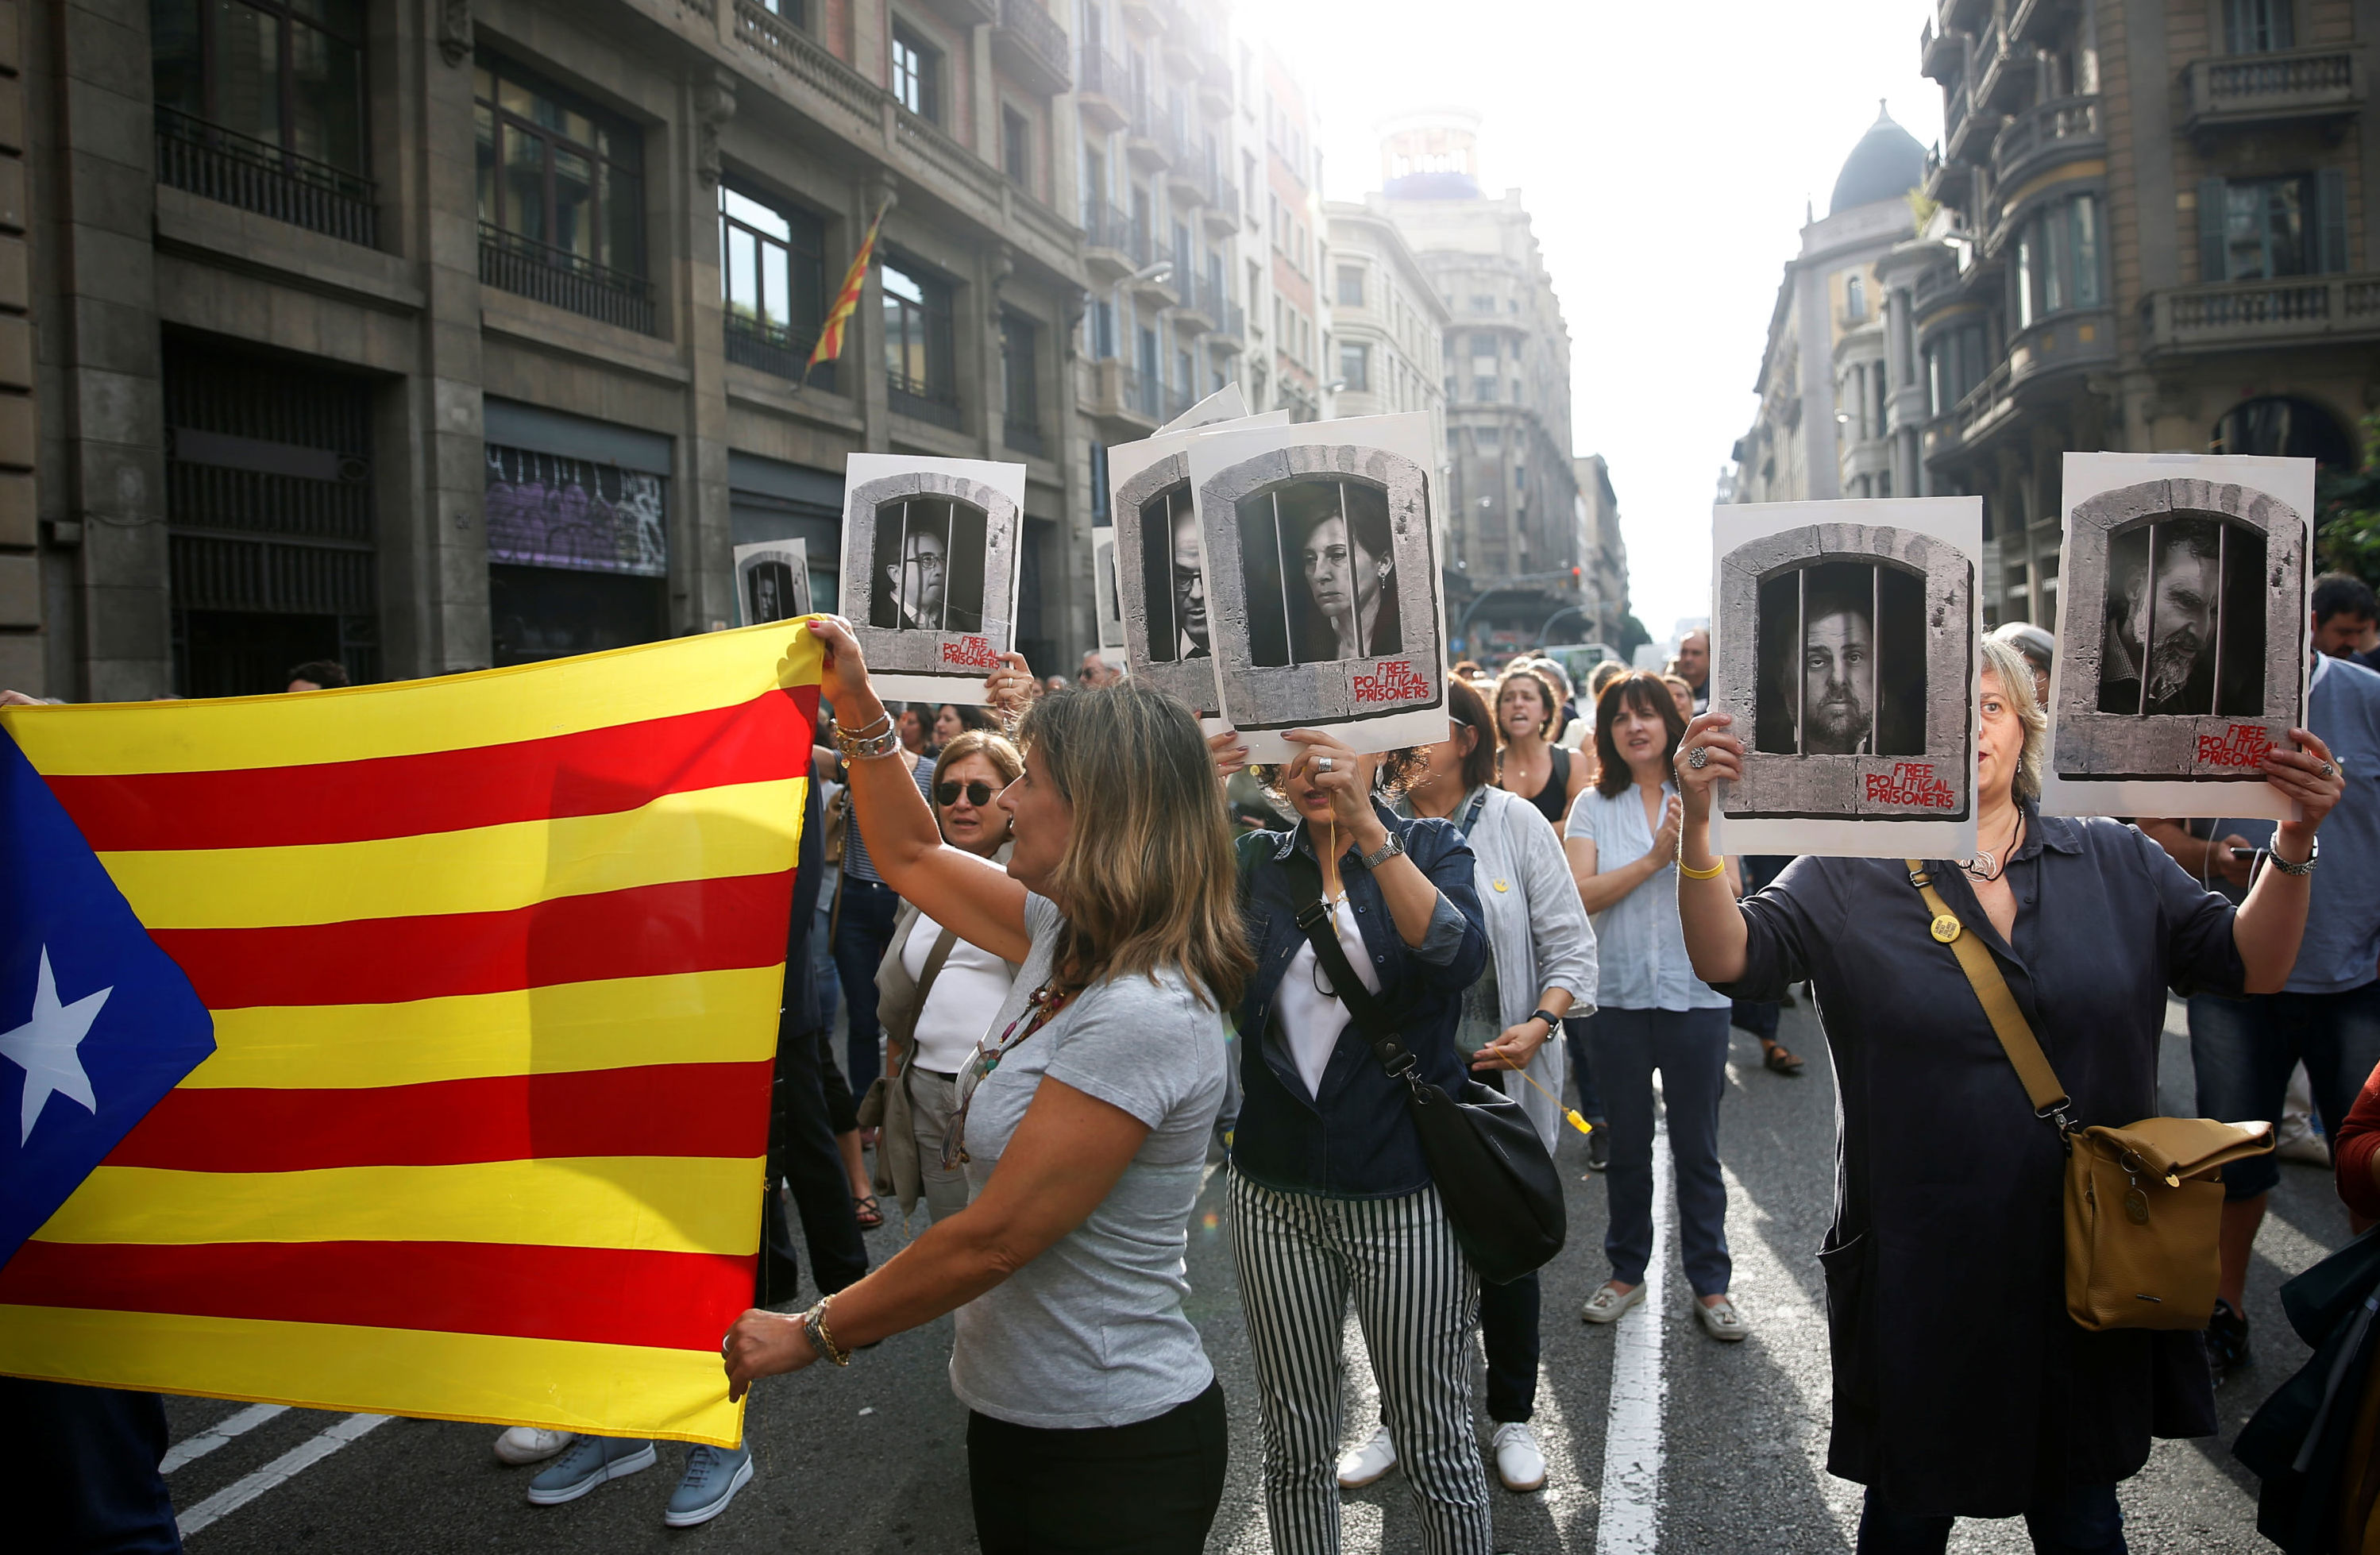 People holding an Estelada (Catalan separatist flag) and pictures of Catalan politicians as they walk through Via Laetana Avenue during a protest after a verdict in a trial over a banned independence referendum, in Barcelona, Spain October 14, 2019